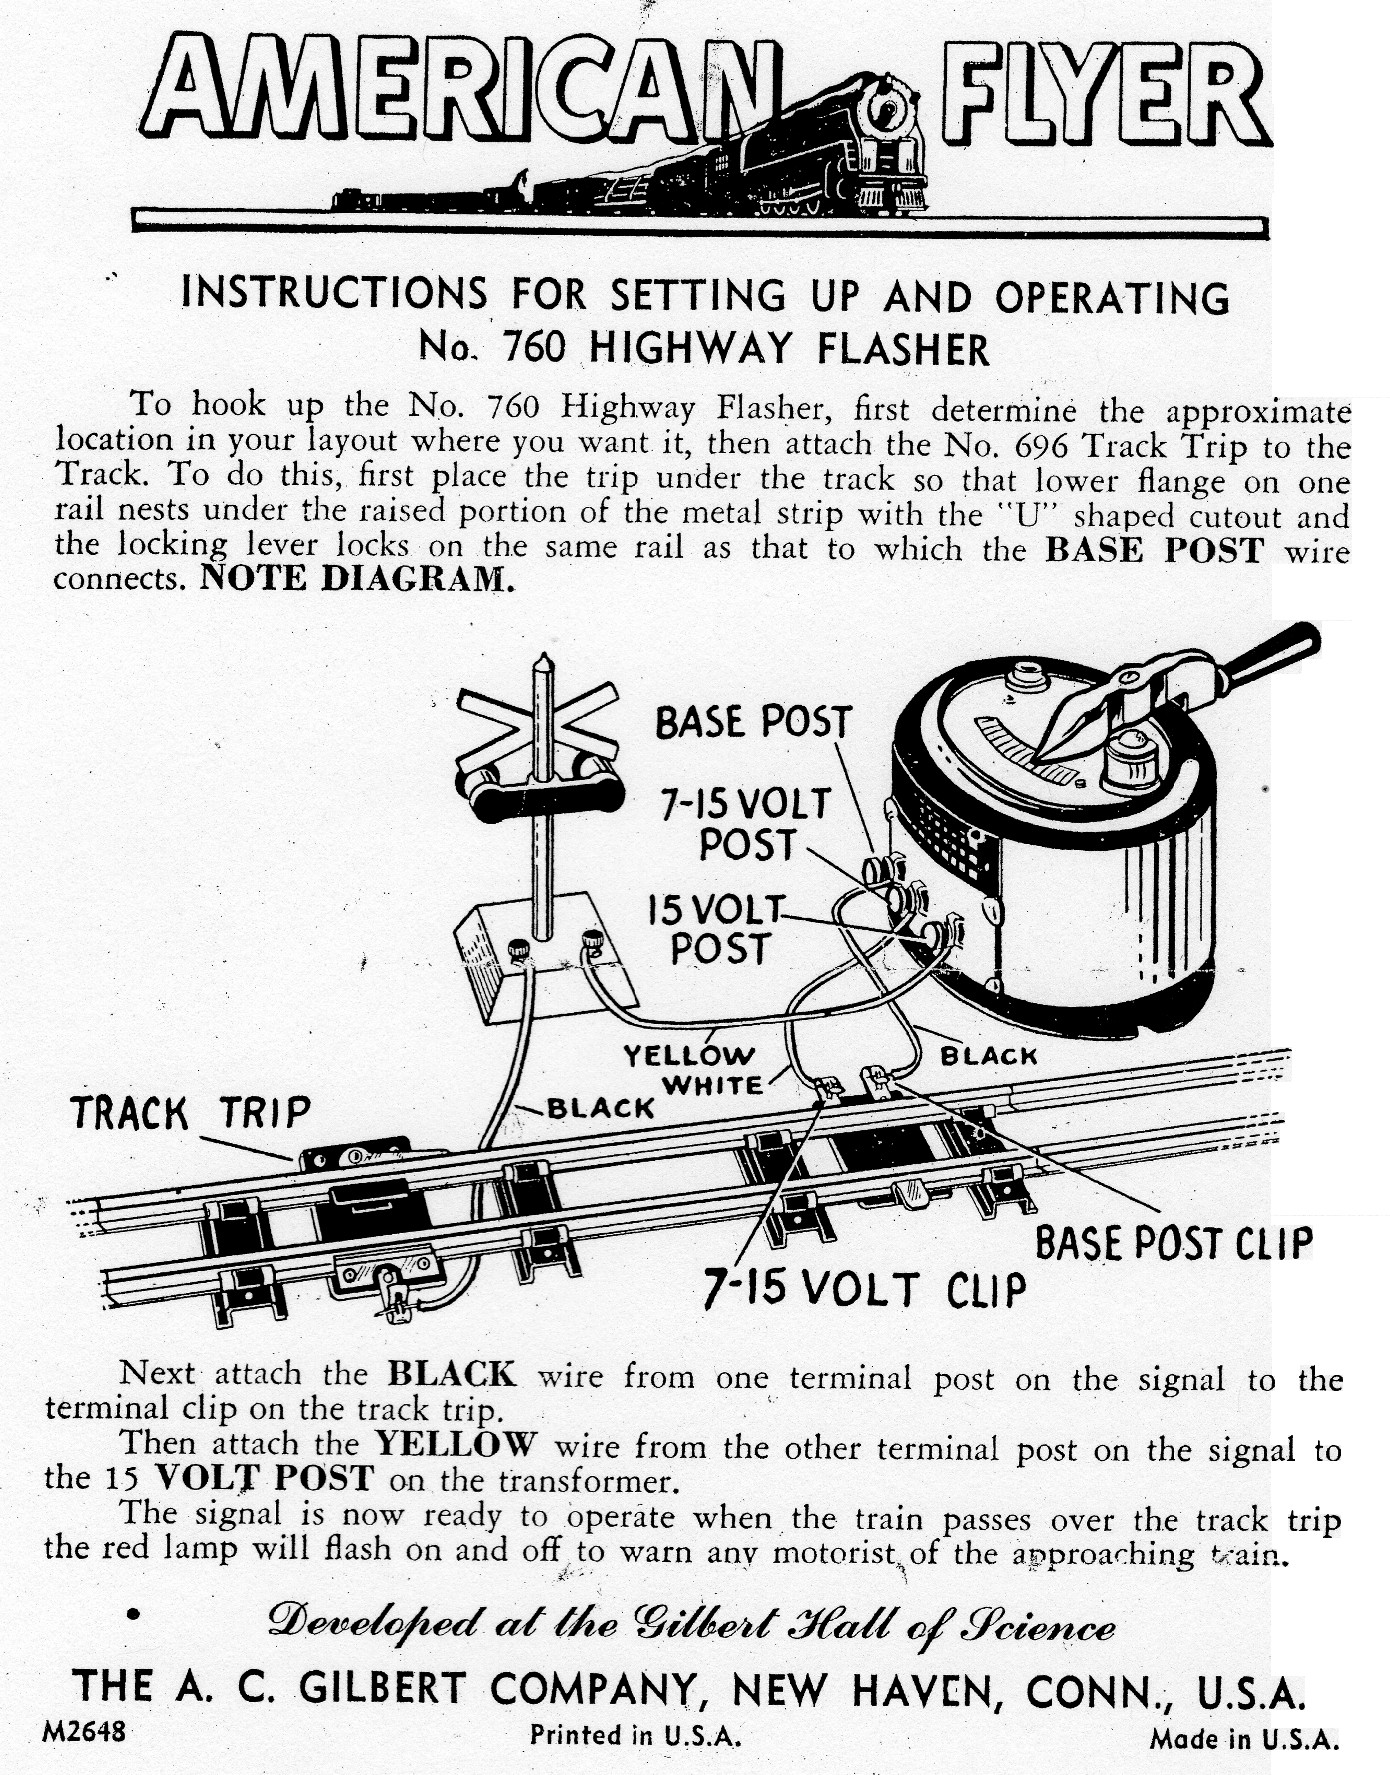 Instructions for Setting Up and Operating No. 760 Highway Flasher - Page 1